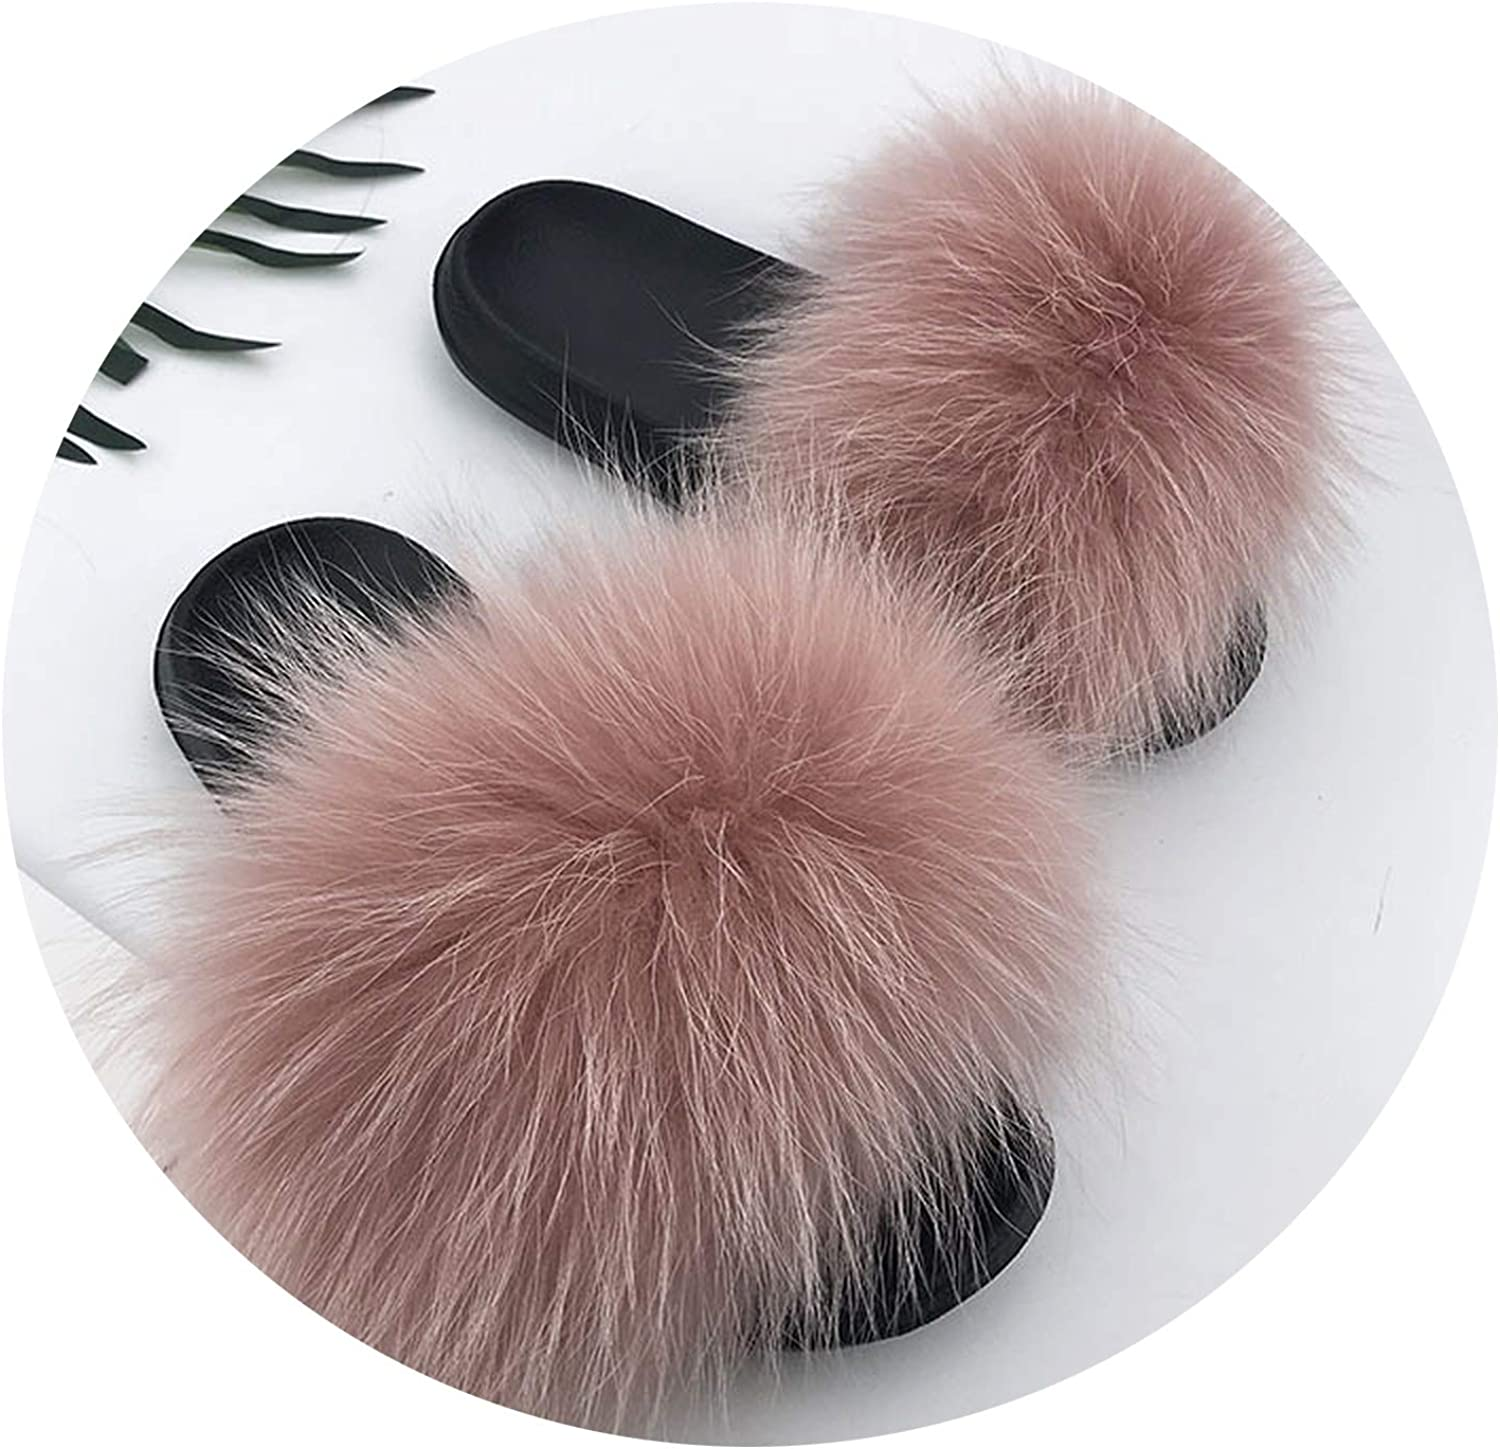 Just XiaoZhouZhou 28 colors Real Fur Slippers Women Fox Fluffy Sliders Comfort with Feathers Furry Summer Flats Sweet Ladies shoes Plus Size 36-45,20,6.5